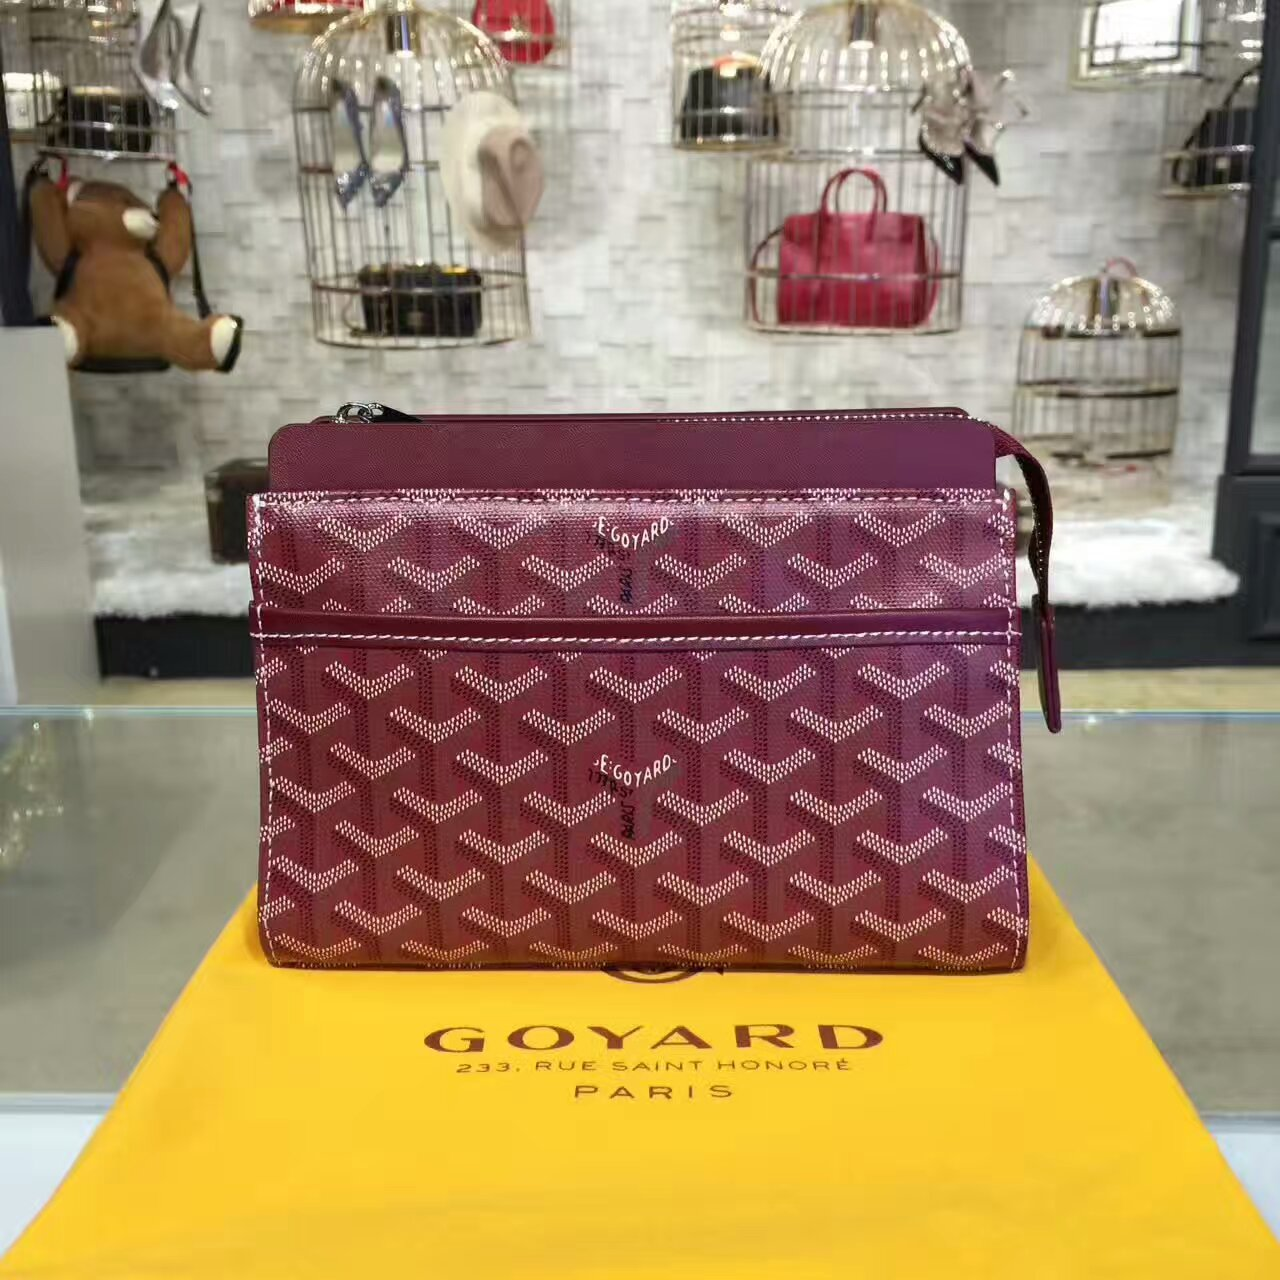 Goyard Cosmetic Bag Burgundy Toiletry Case